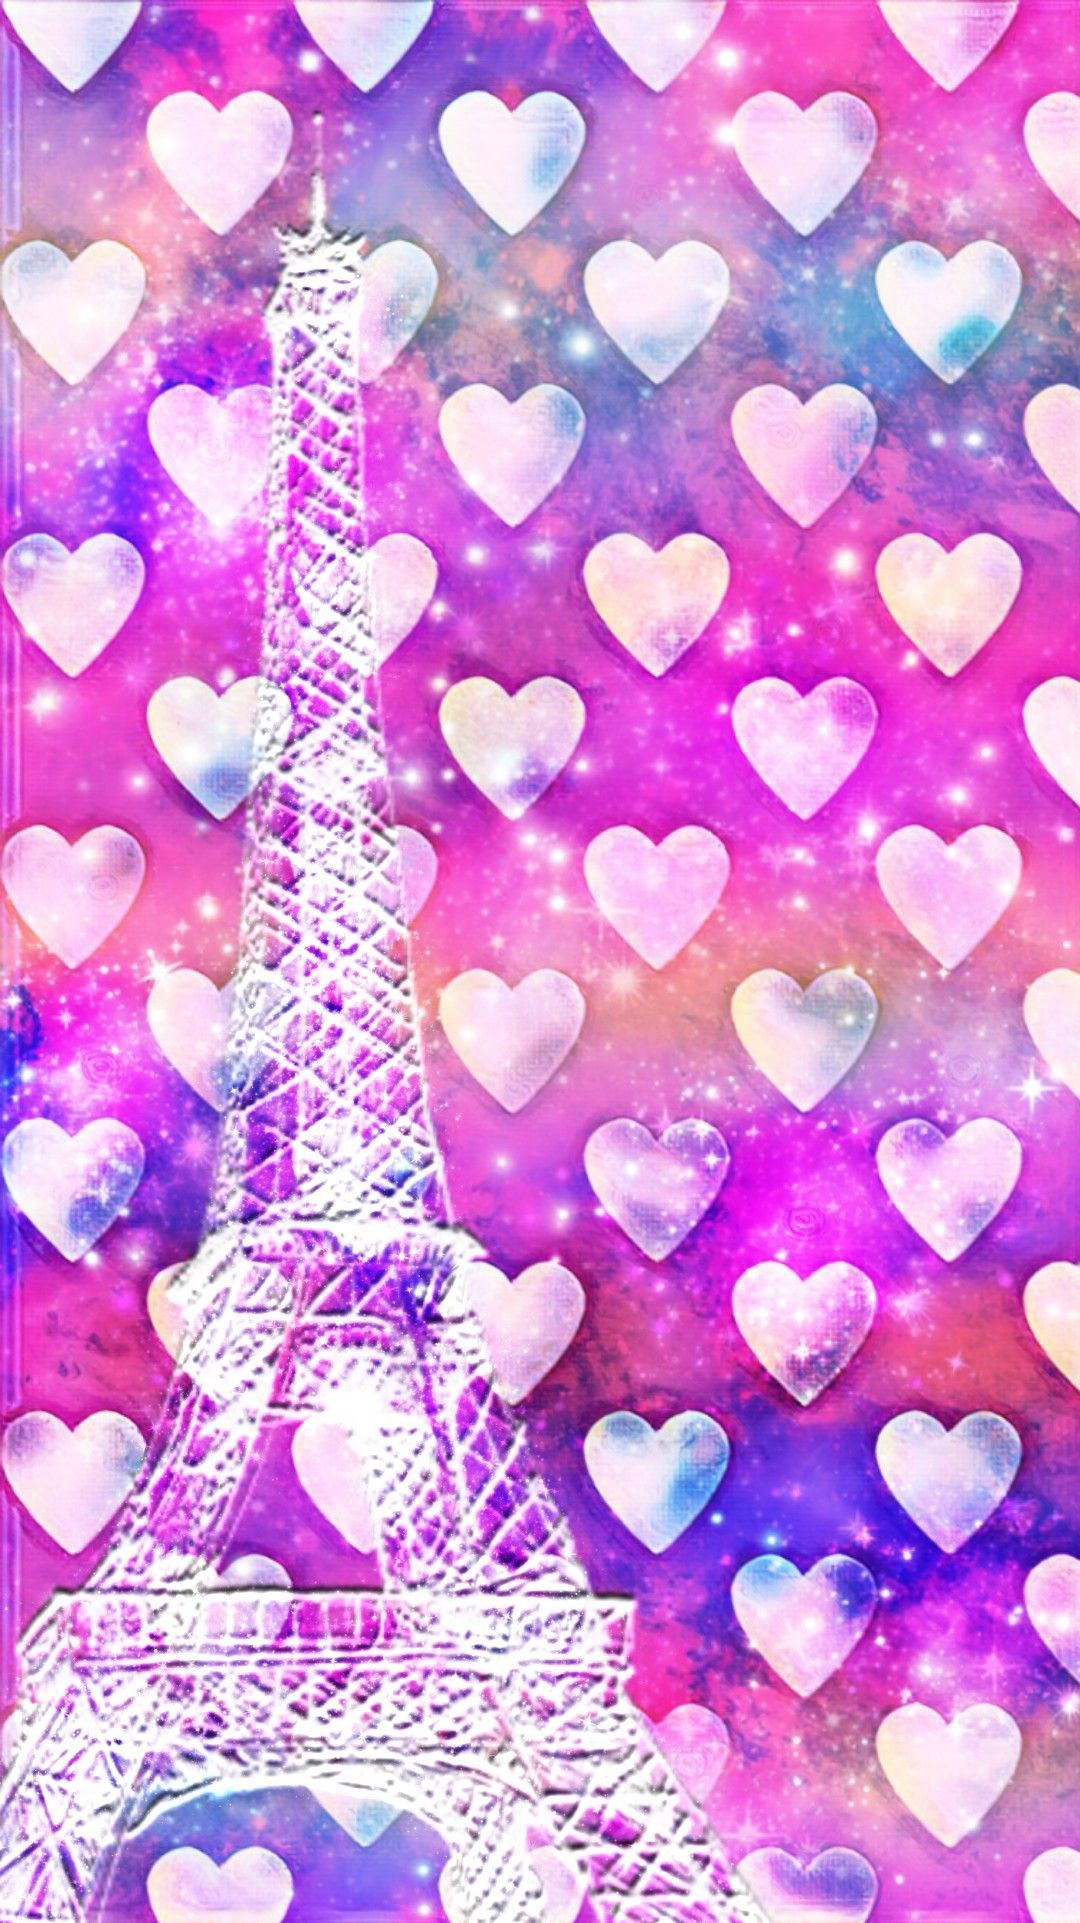 1080x1923 Lovely Hearts Paris, made by me #patterns #colorful #glitter ...